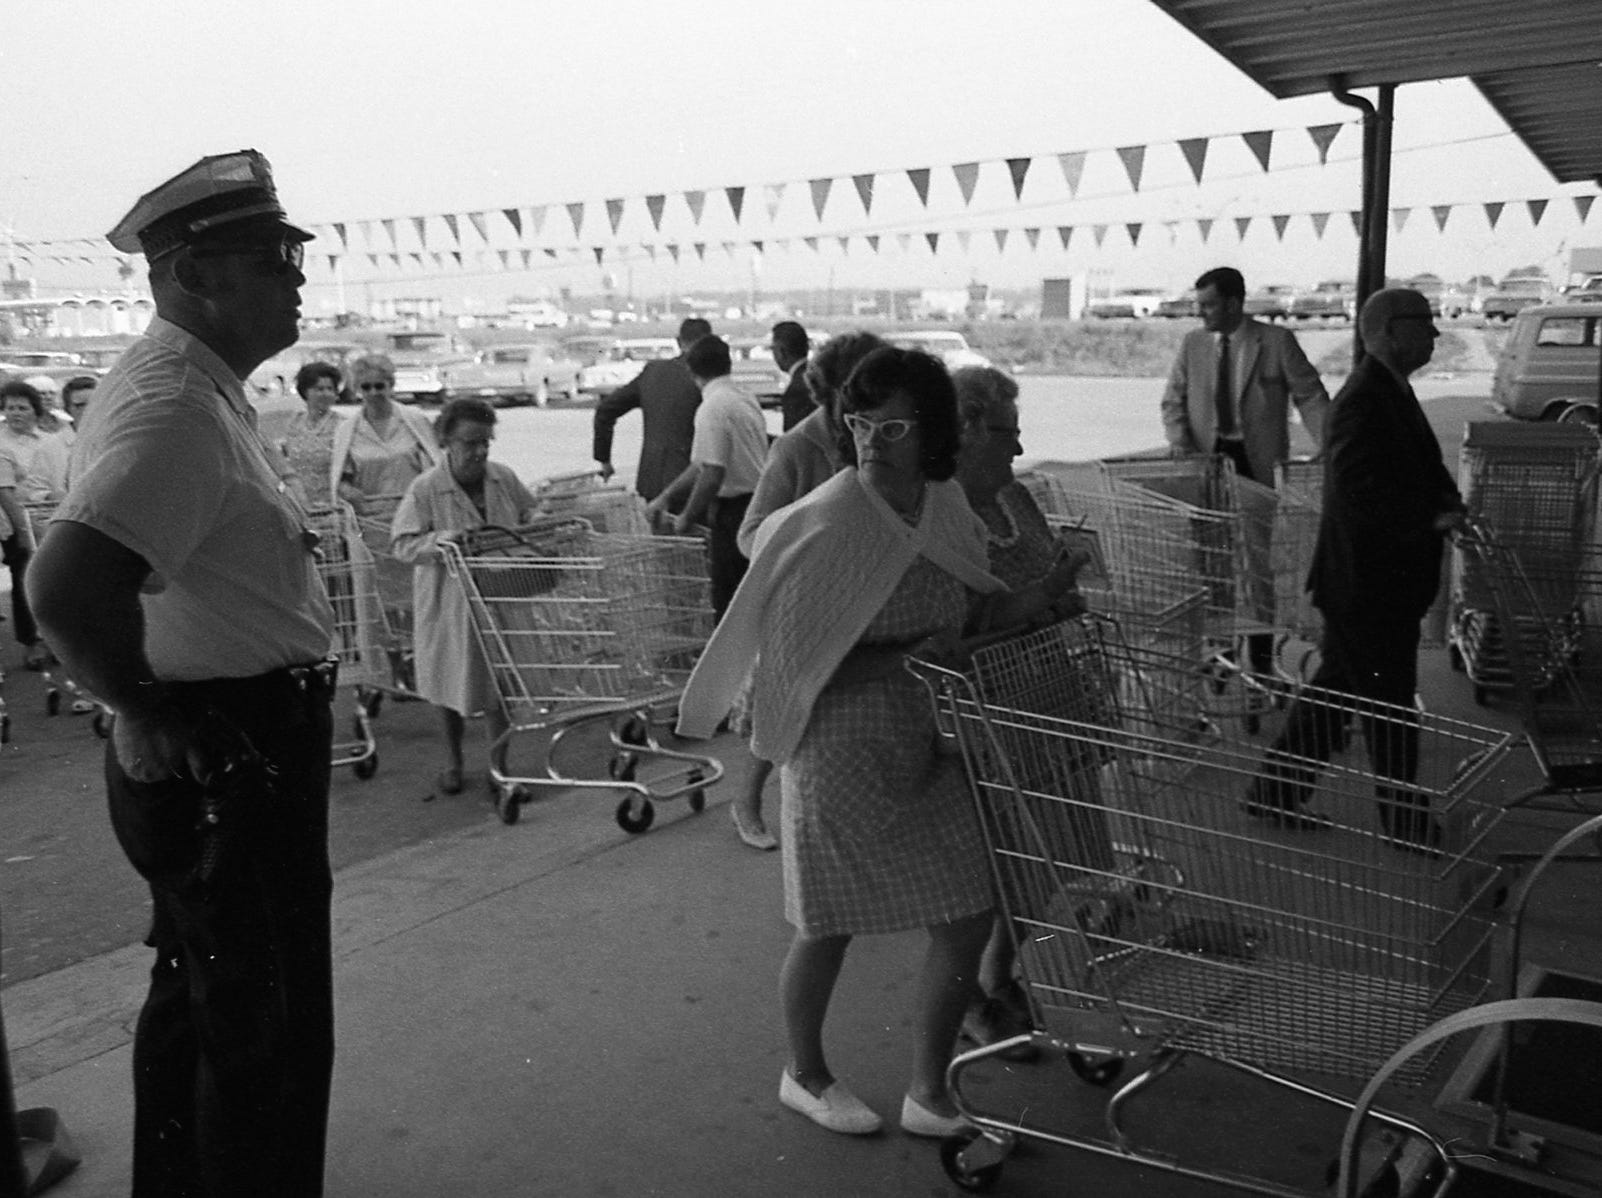 In May 1970, the new Kroger opened up in Chillicothe Plaza.